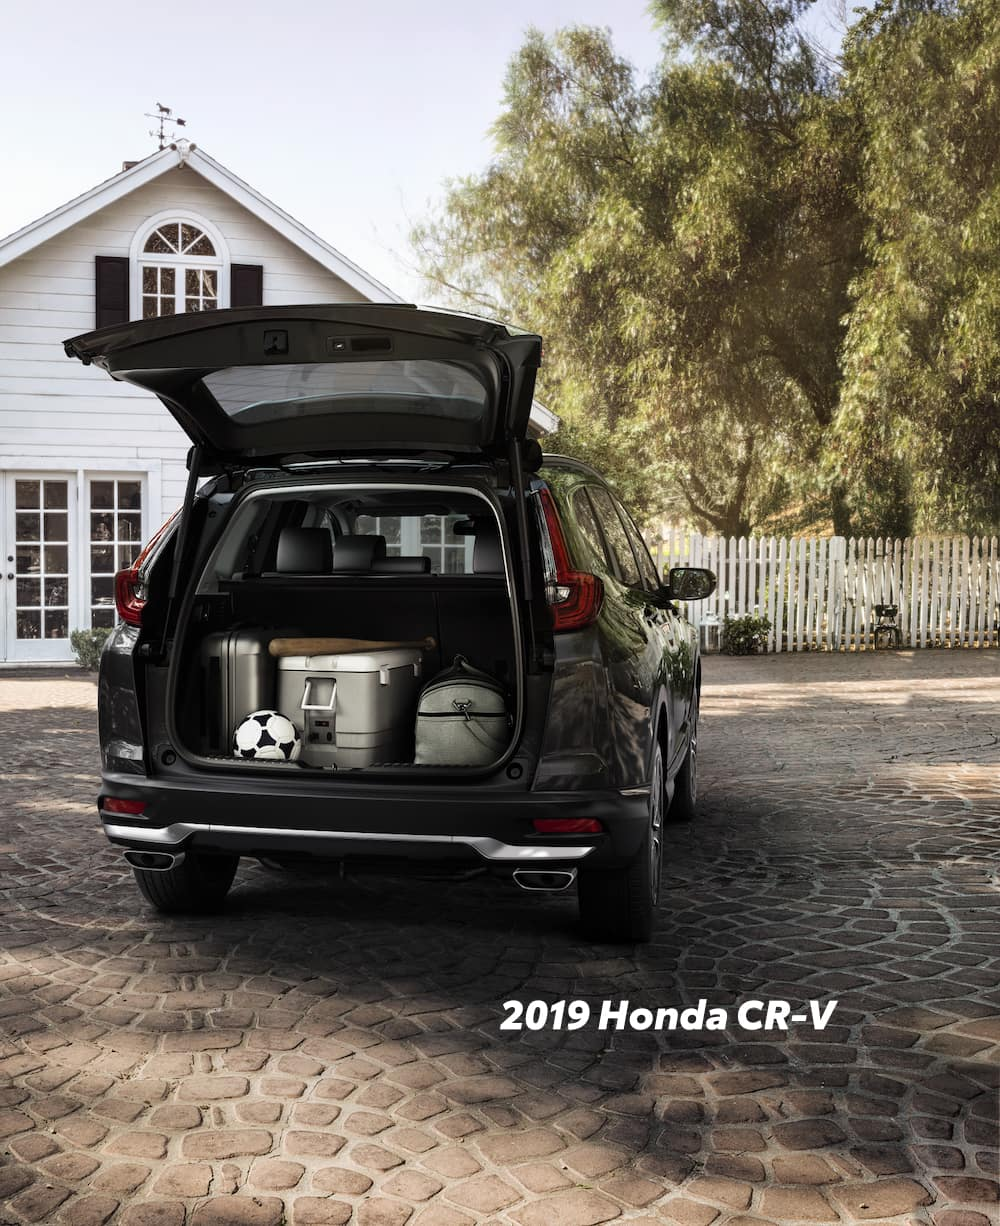 Comparison of the 2019 Pilot versus 2019 CR-V at Boch Honda of Norwood | The trunk of the 2019 Honda CR-V